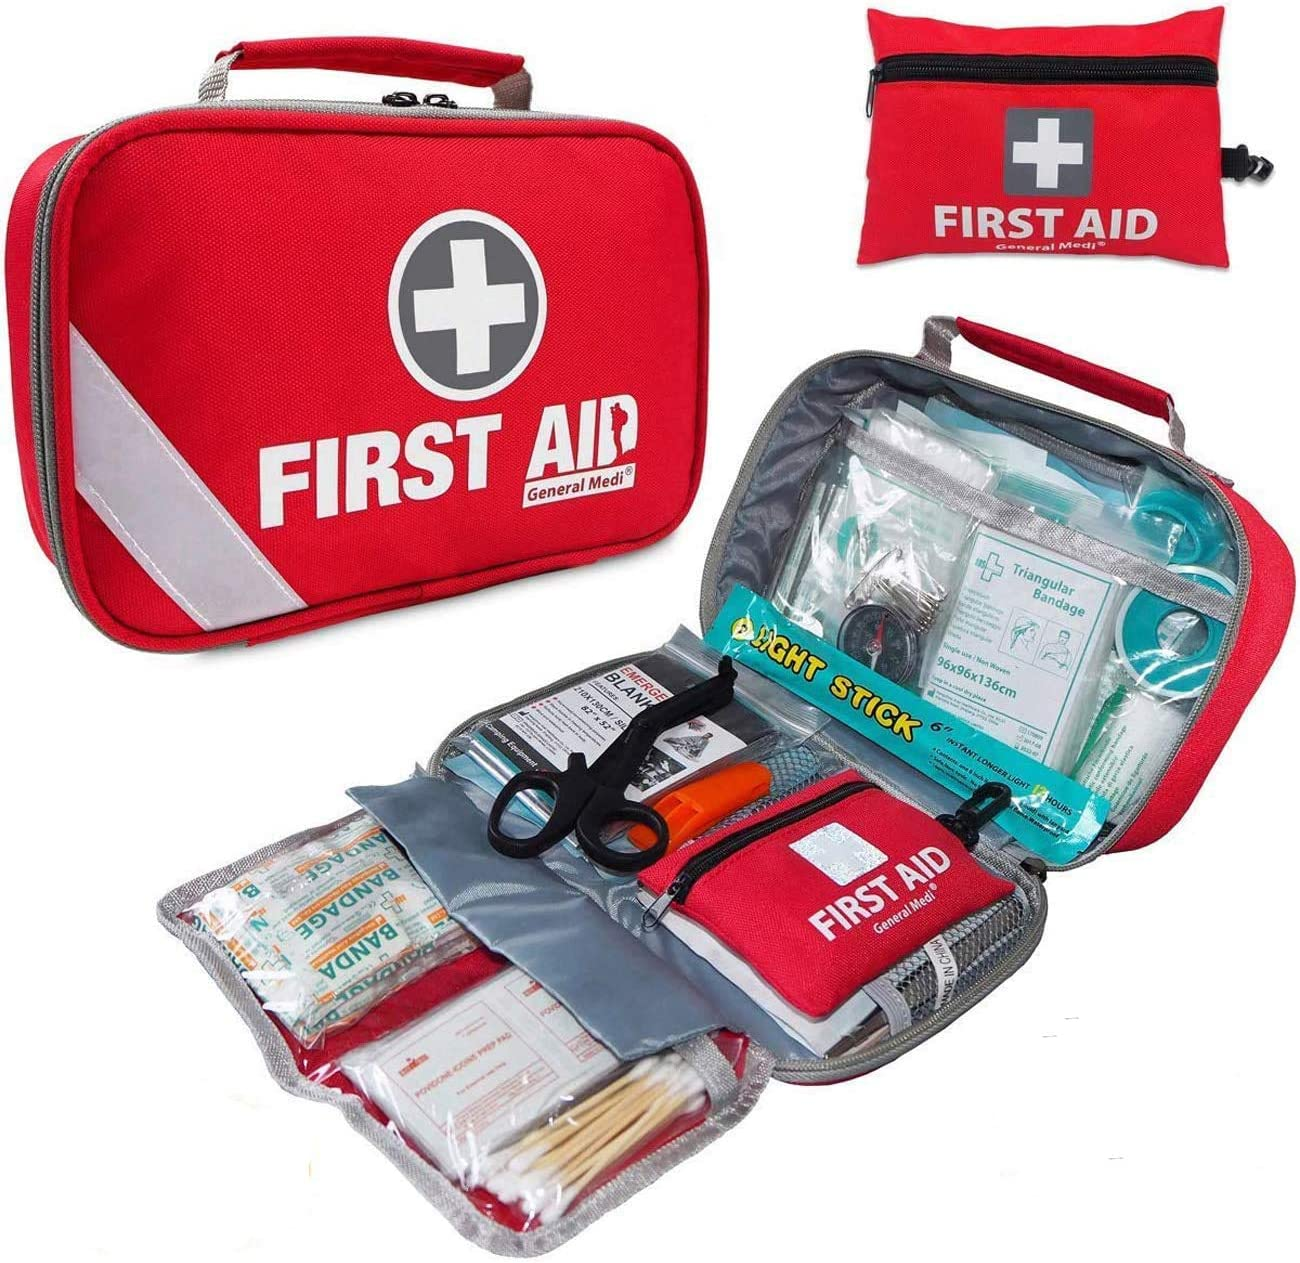 Image result for First Aid Kit